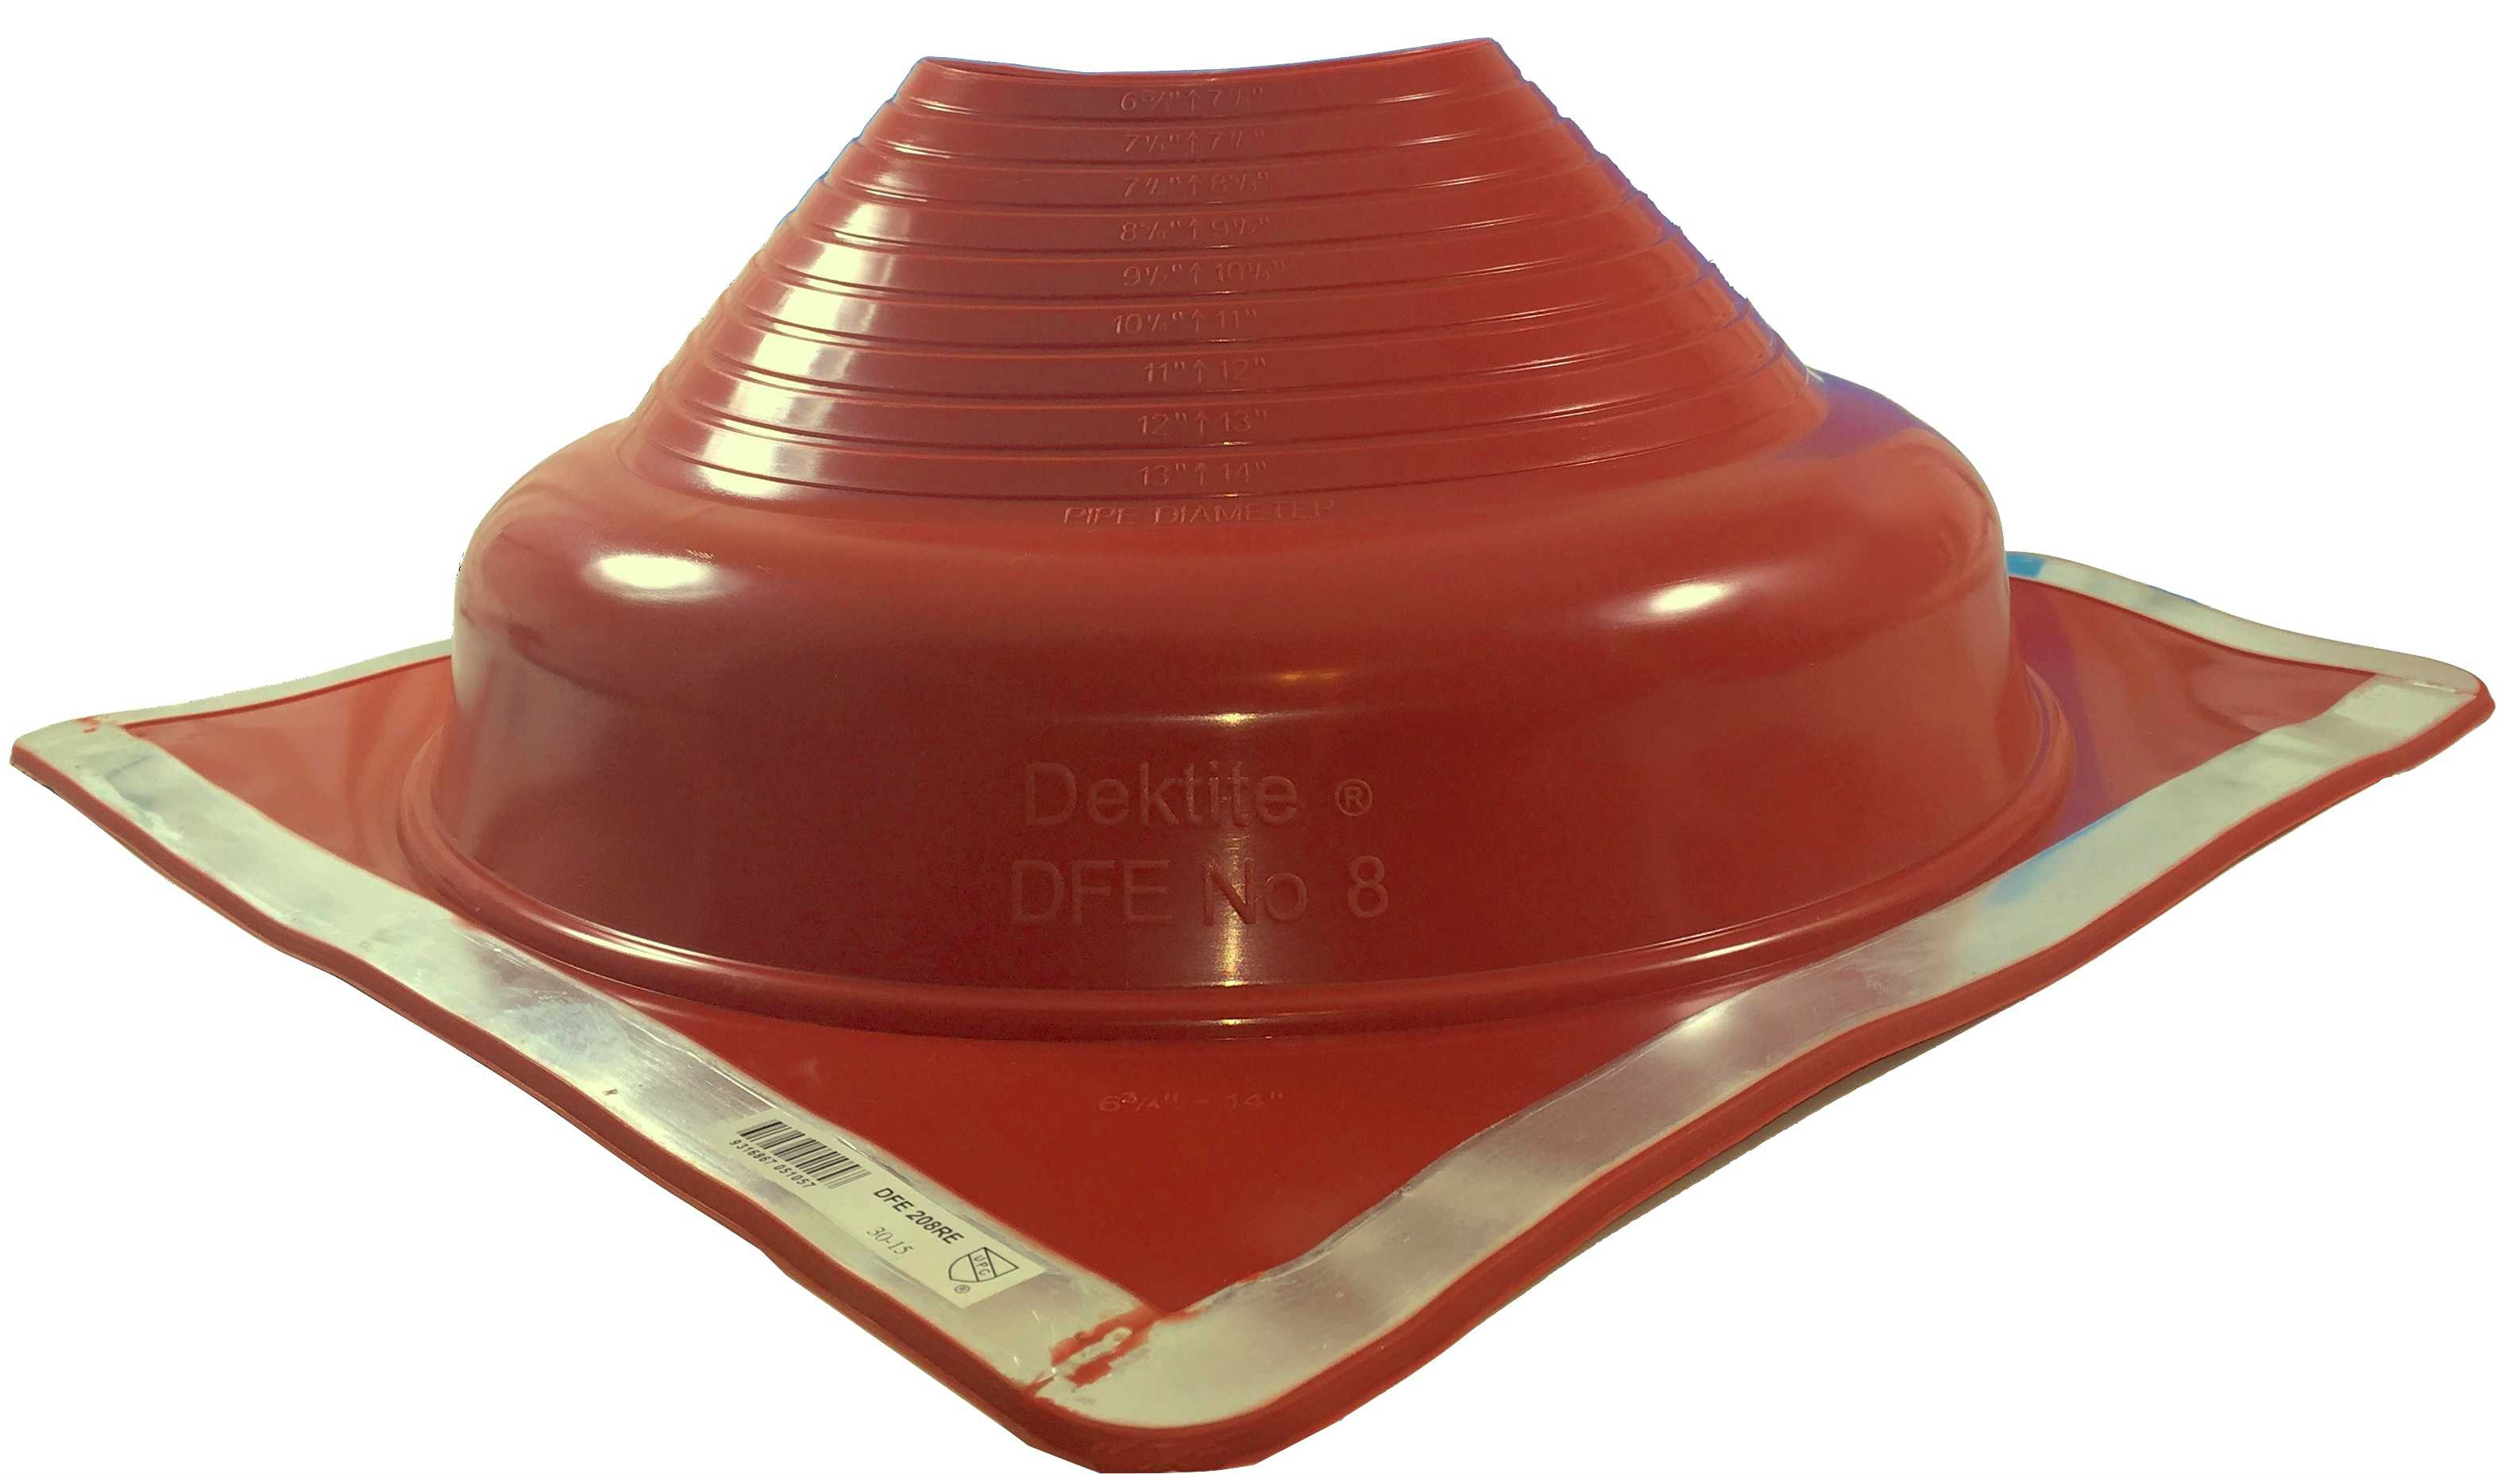 DEKTITE ROUND BASE PIPE FLASHING BOOT: #8 RED High Temp Silicone Square Base Flexible Pipe Flashing Dektite (for OD pipe sizes 6-3/4' - 14')~pipe flashing fastens w/roofing screws~Deks Dektite